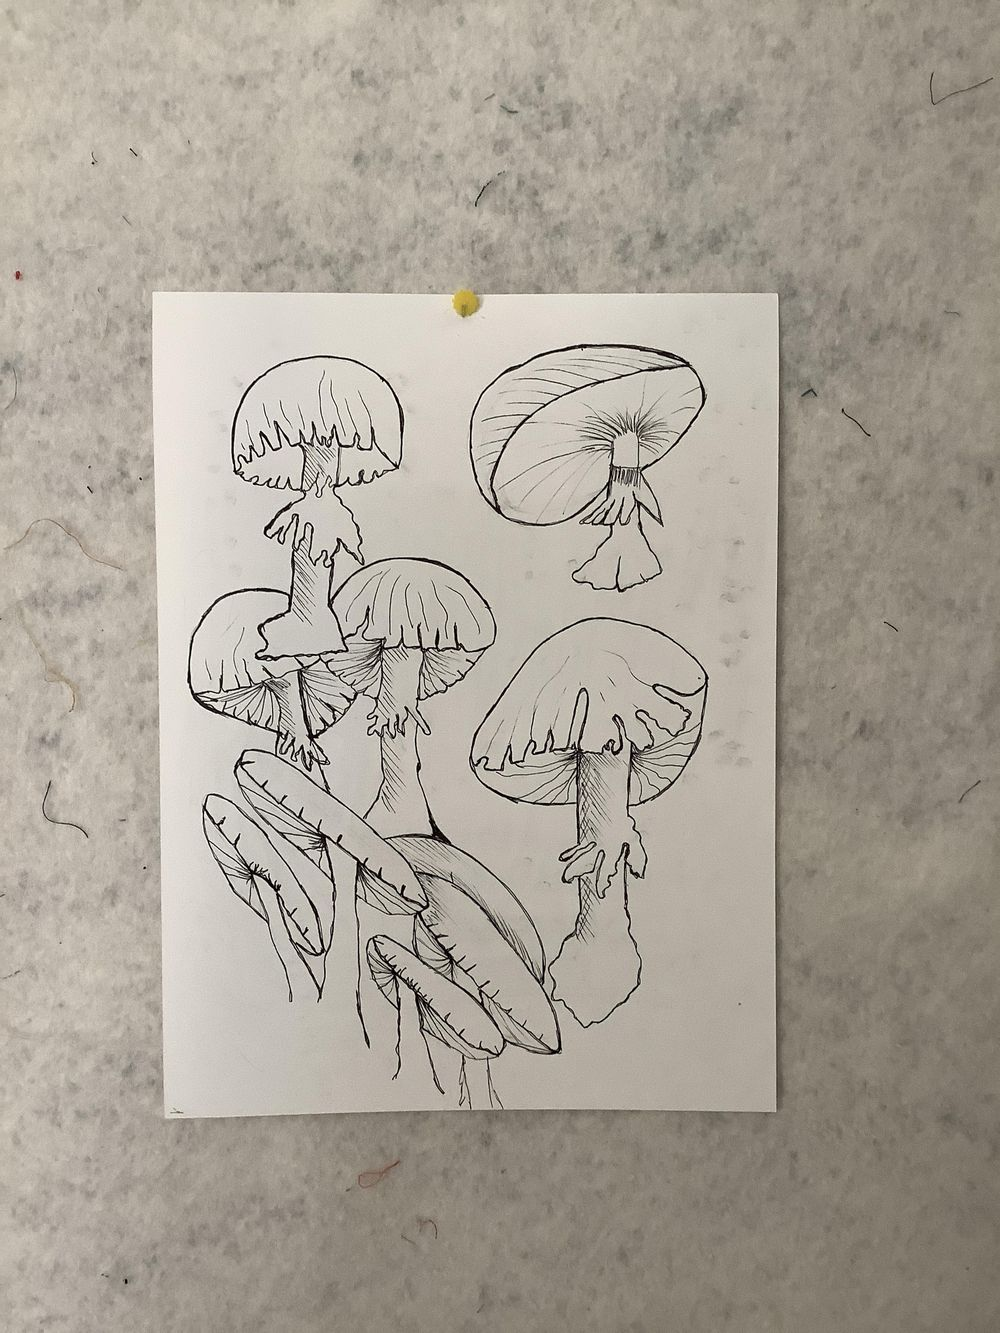 Funky mushrooms - image 1 - student project